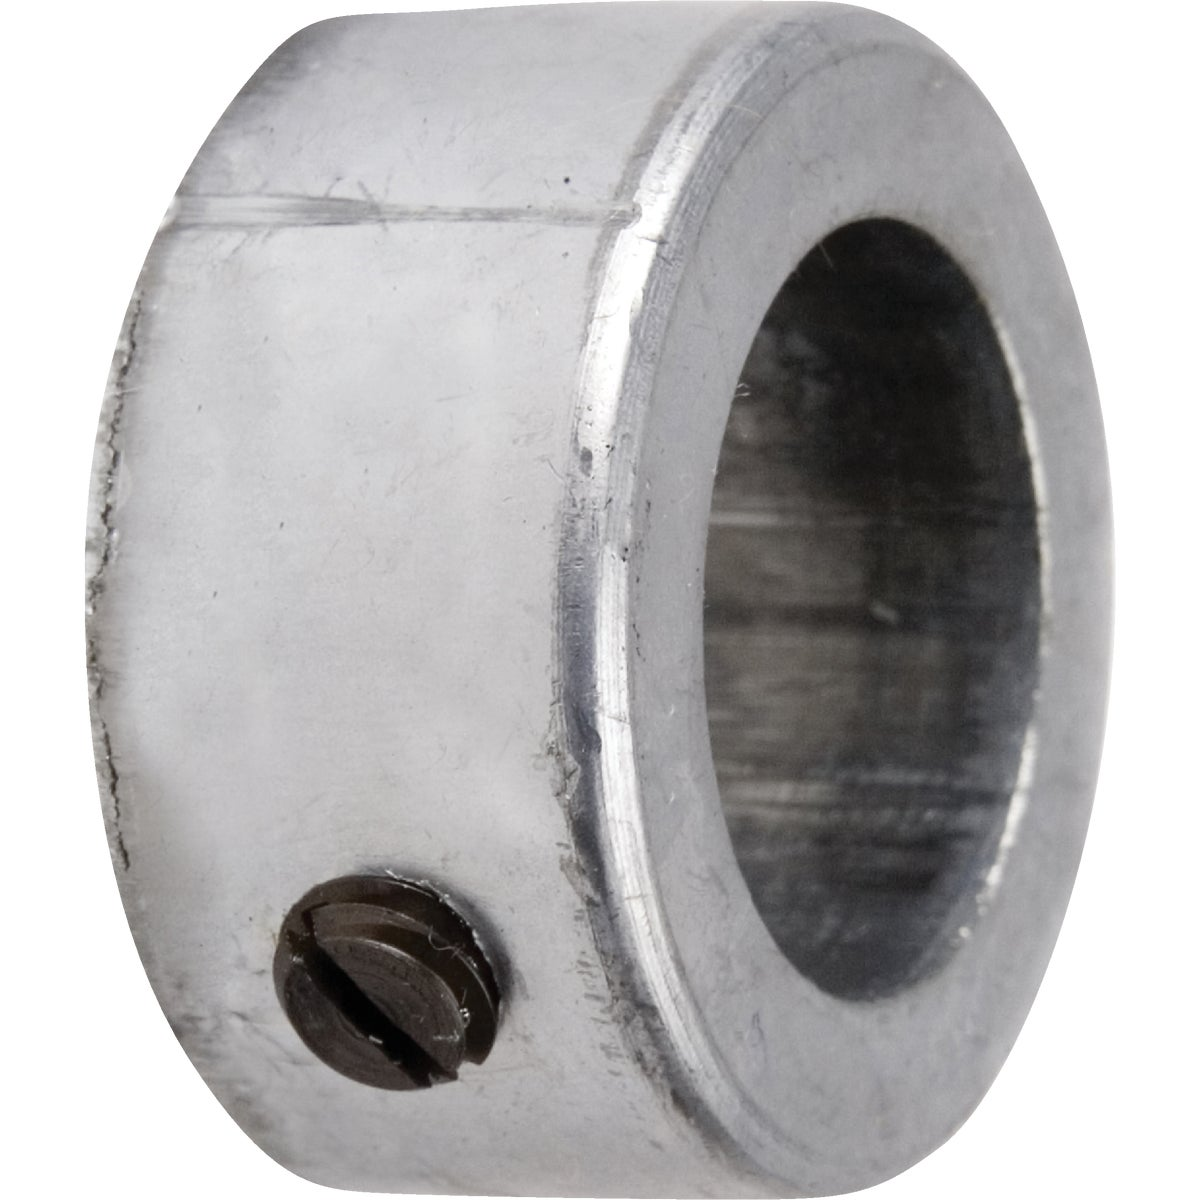 "3/8"" SHAFT COLLAR"